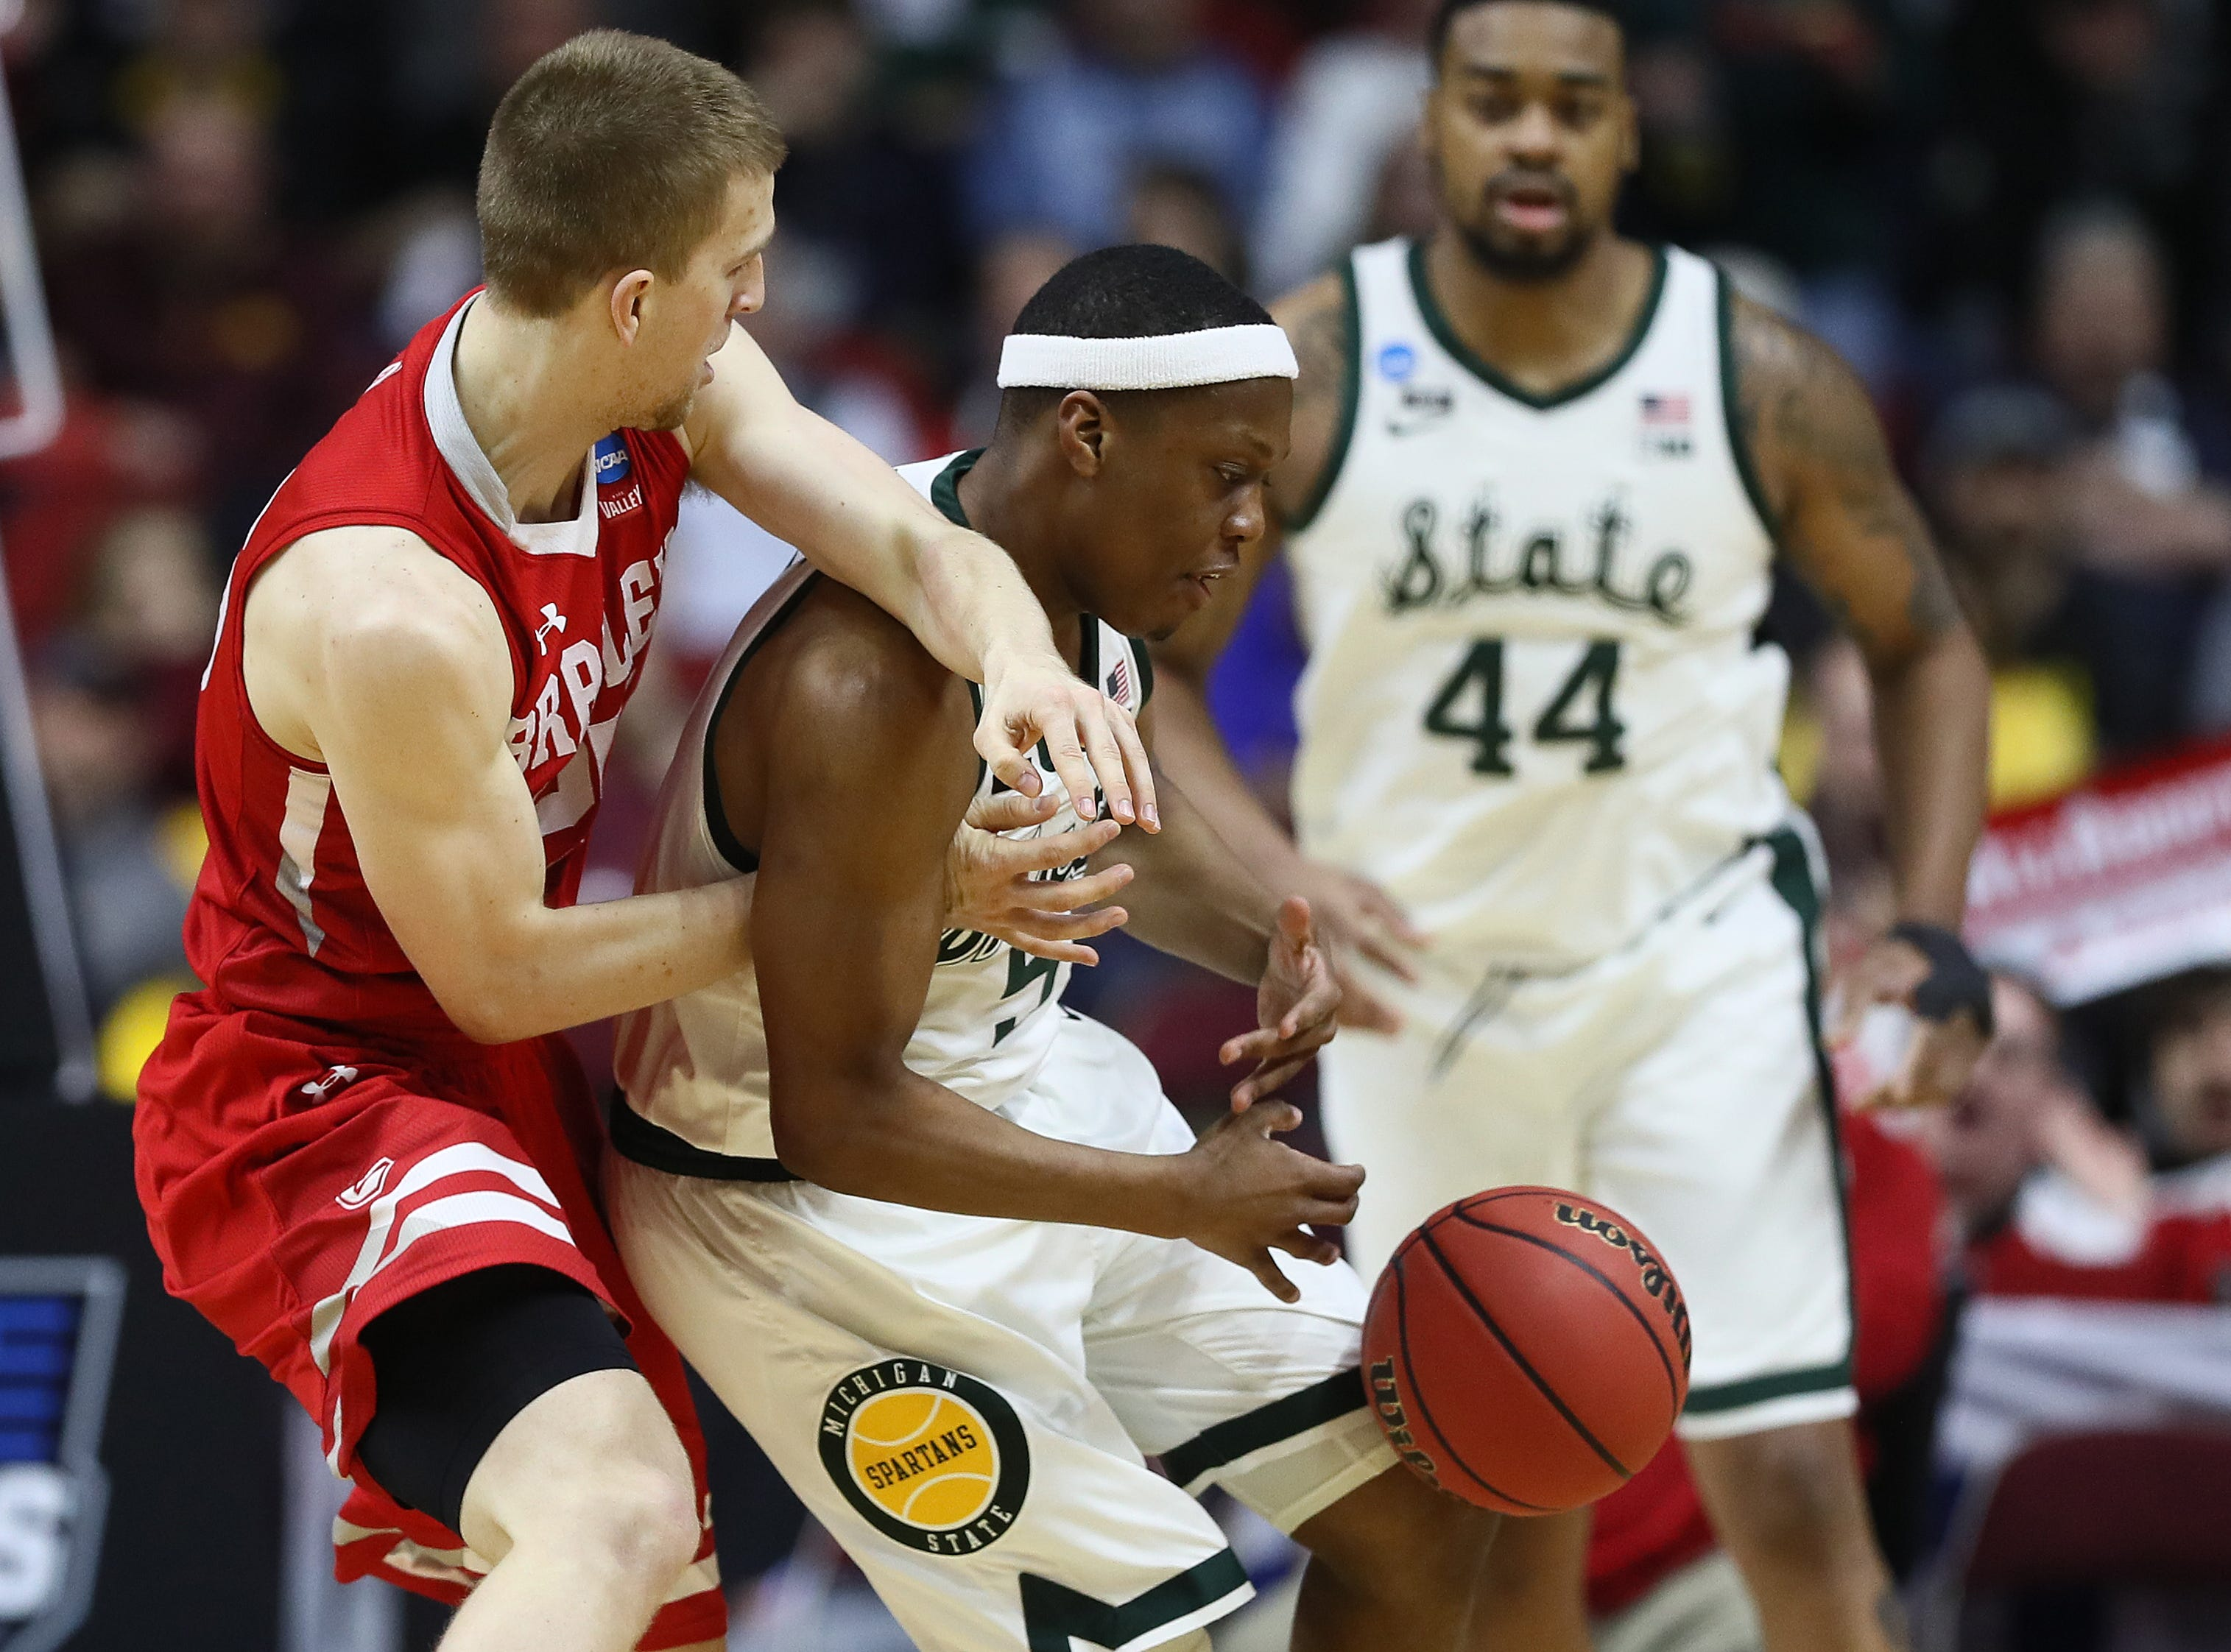 Cassius Winston #5 of the Michigan State Spartans loses control of the ball against the Bradley Braves during their game in the First Round of the NCAA Basketball Tournament at Wells Fargo Arena on March 21, 2019 in Des Moines, Iowa.